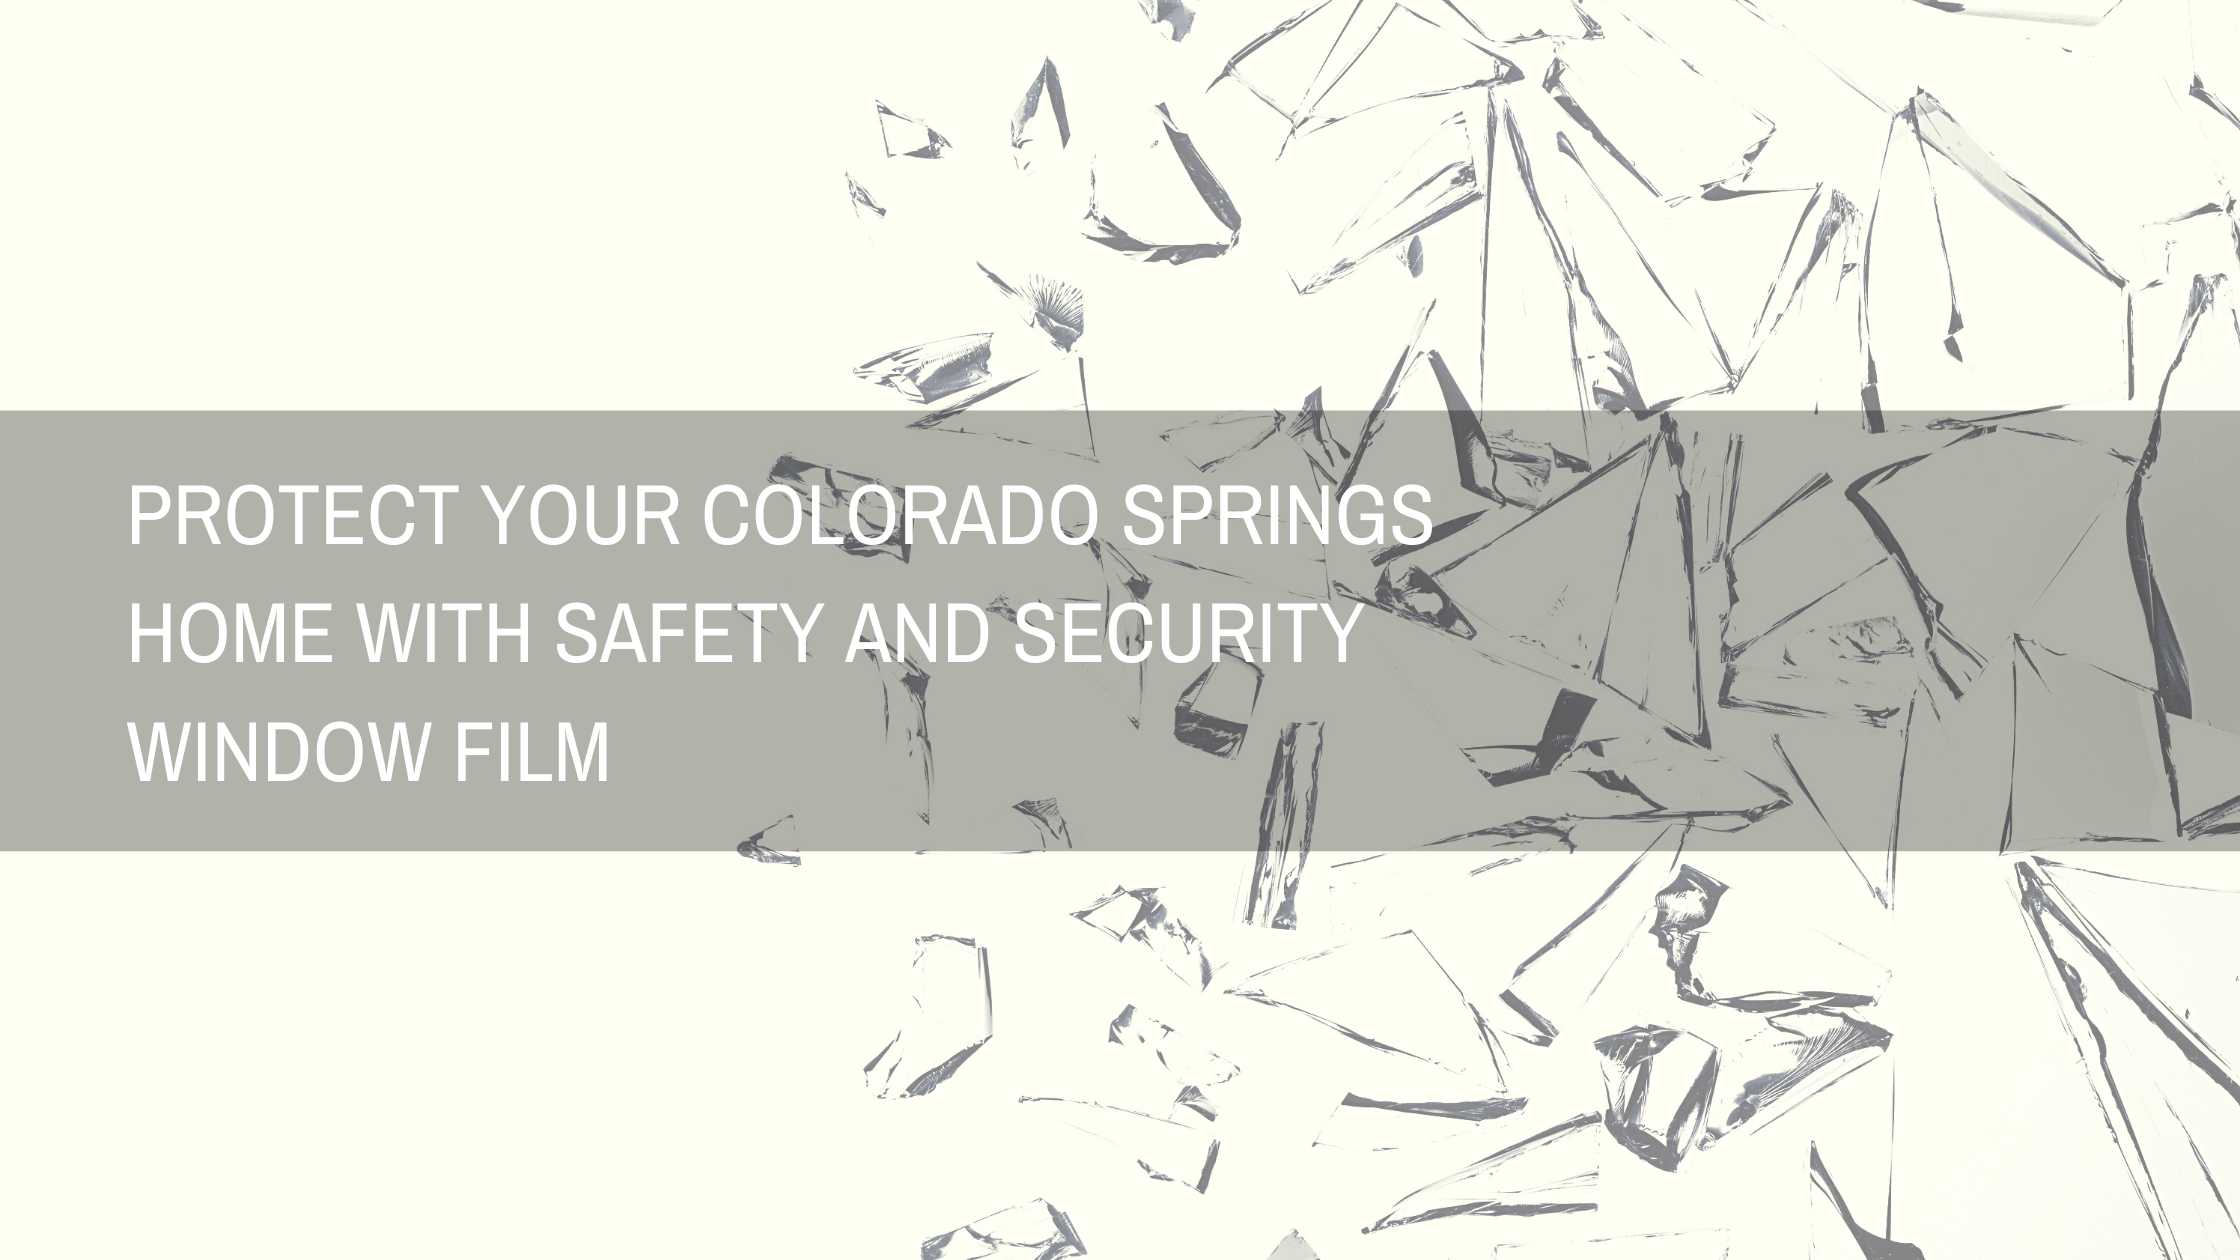 Protect Your Colorado Springs Home with Safety and Security Window Film